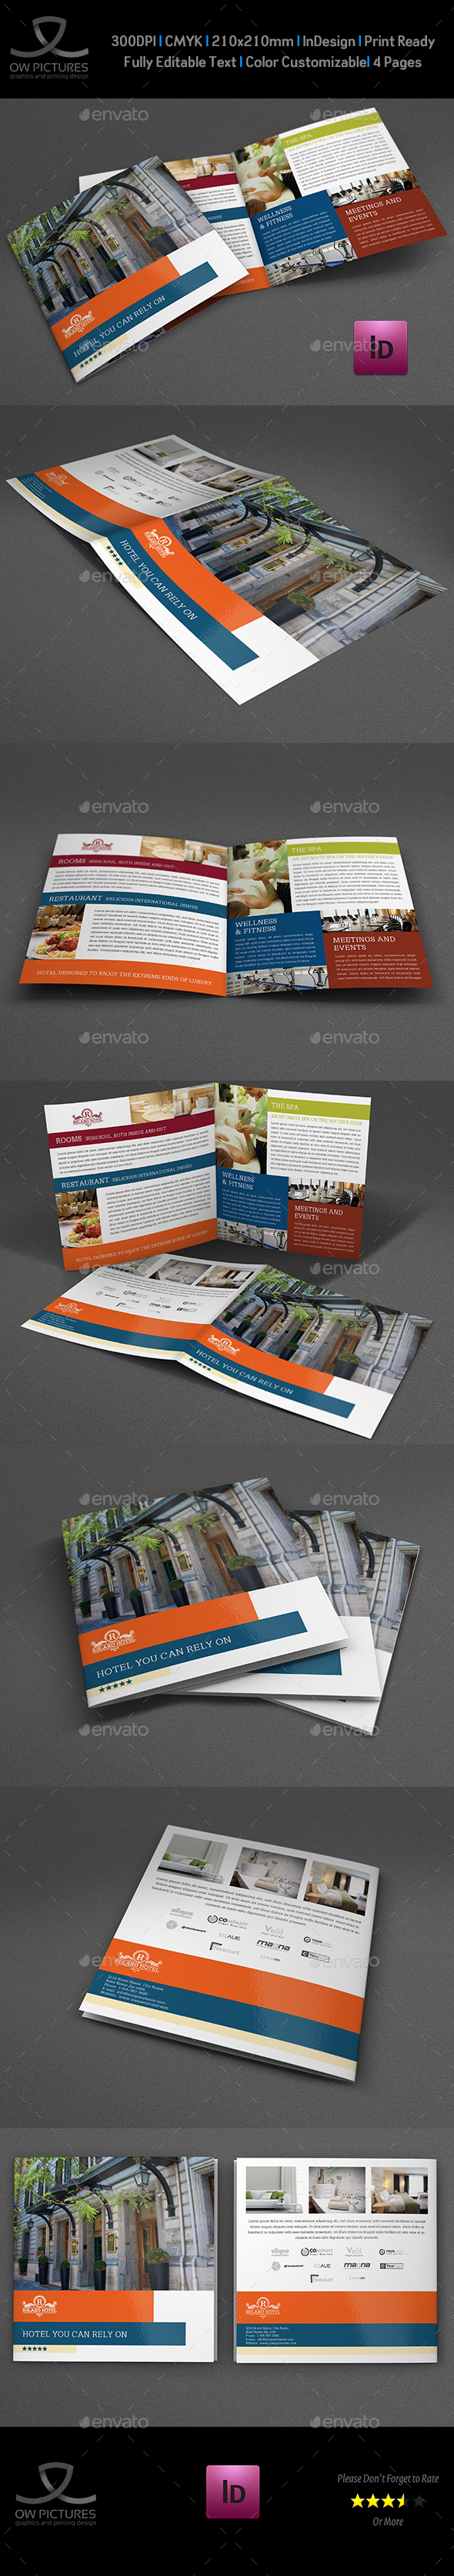 Hotel and Motel Bi-Fold Brochure Template - Brochures Print Templates